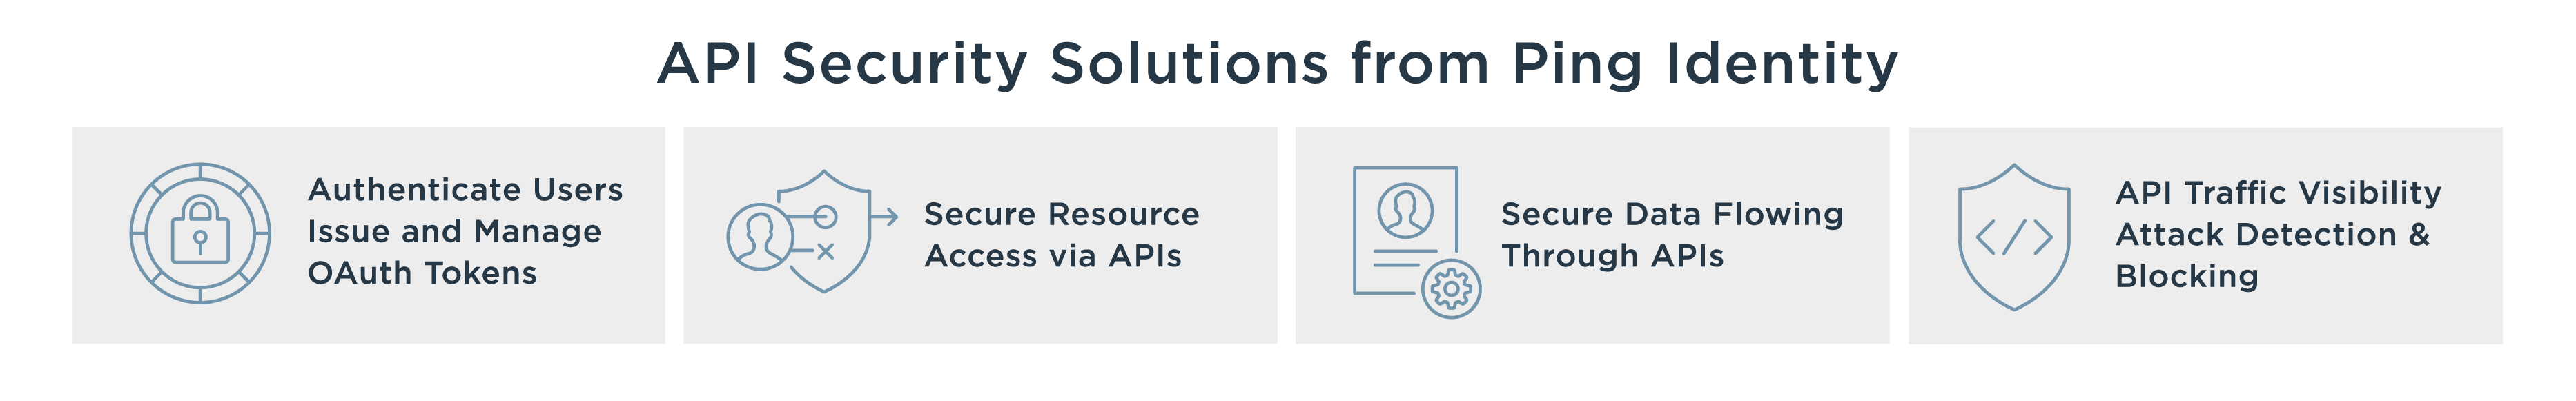 API security solutions